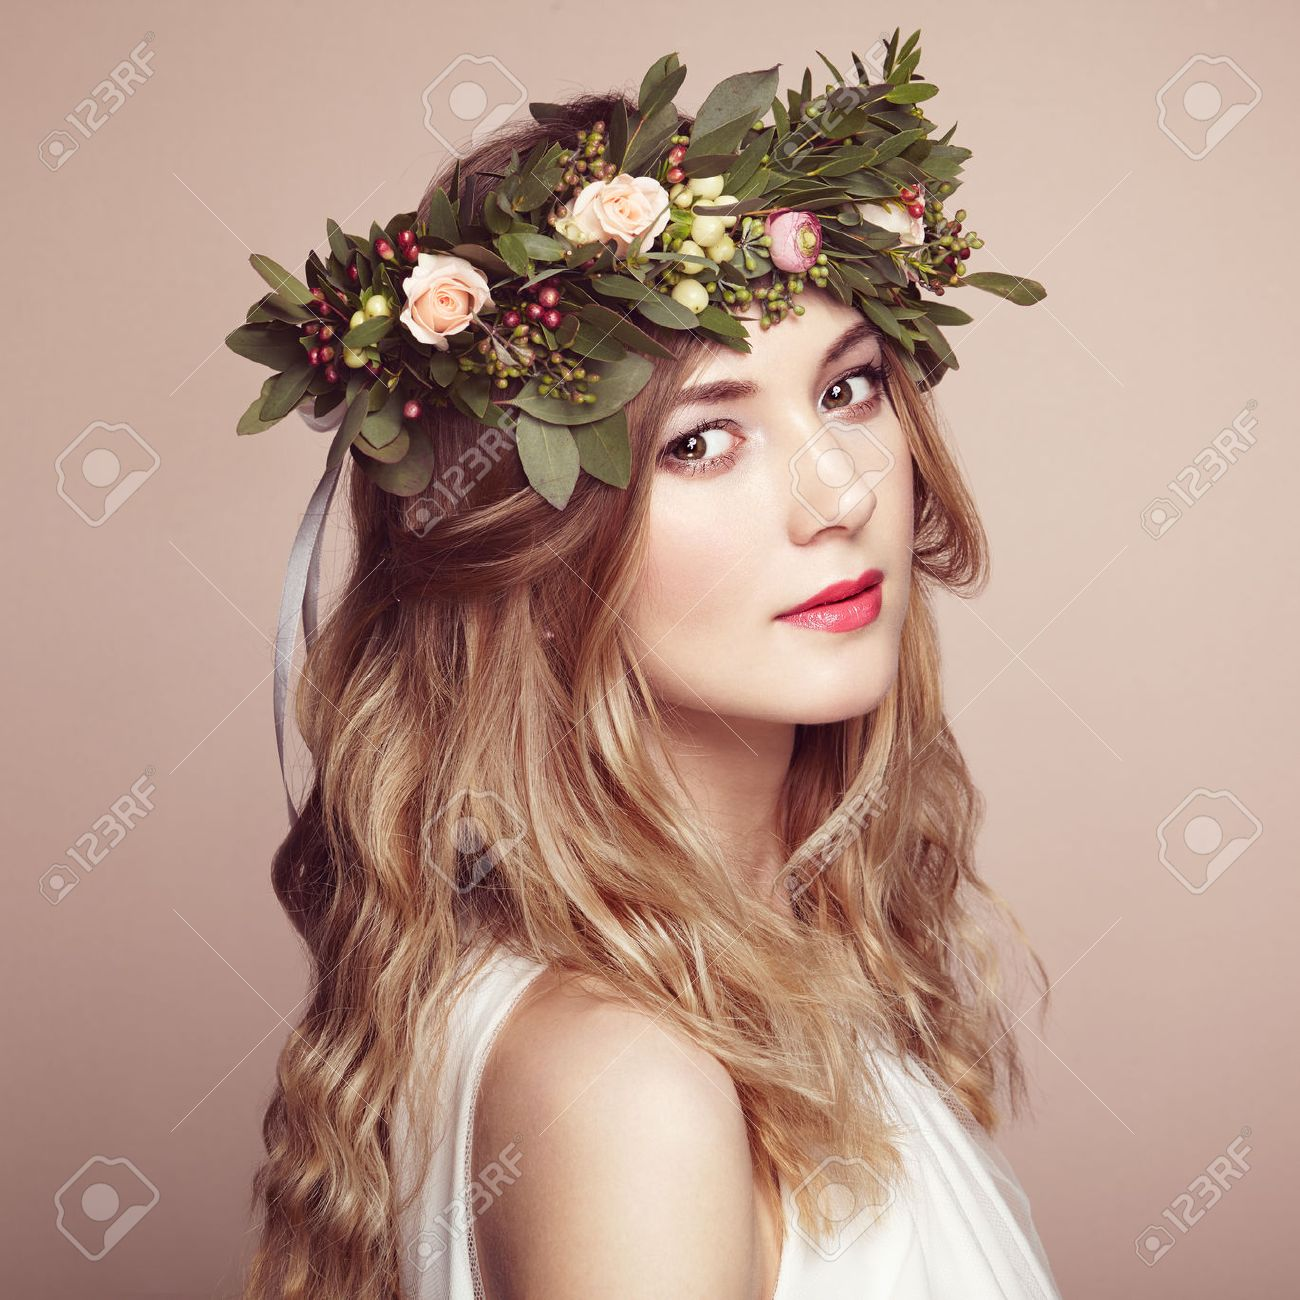 Beautiful blonde woman with flower wreath on her head beauty beautiful blonde woman with flower wreath on her head beauty girl with flowers hairstyle dhlflorist Gallery